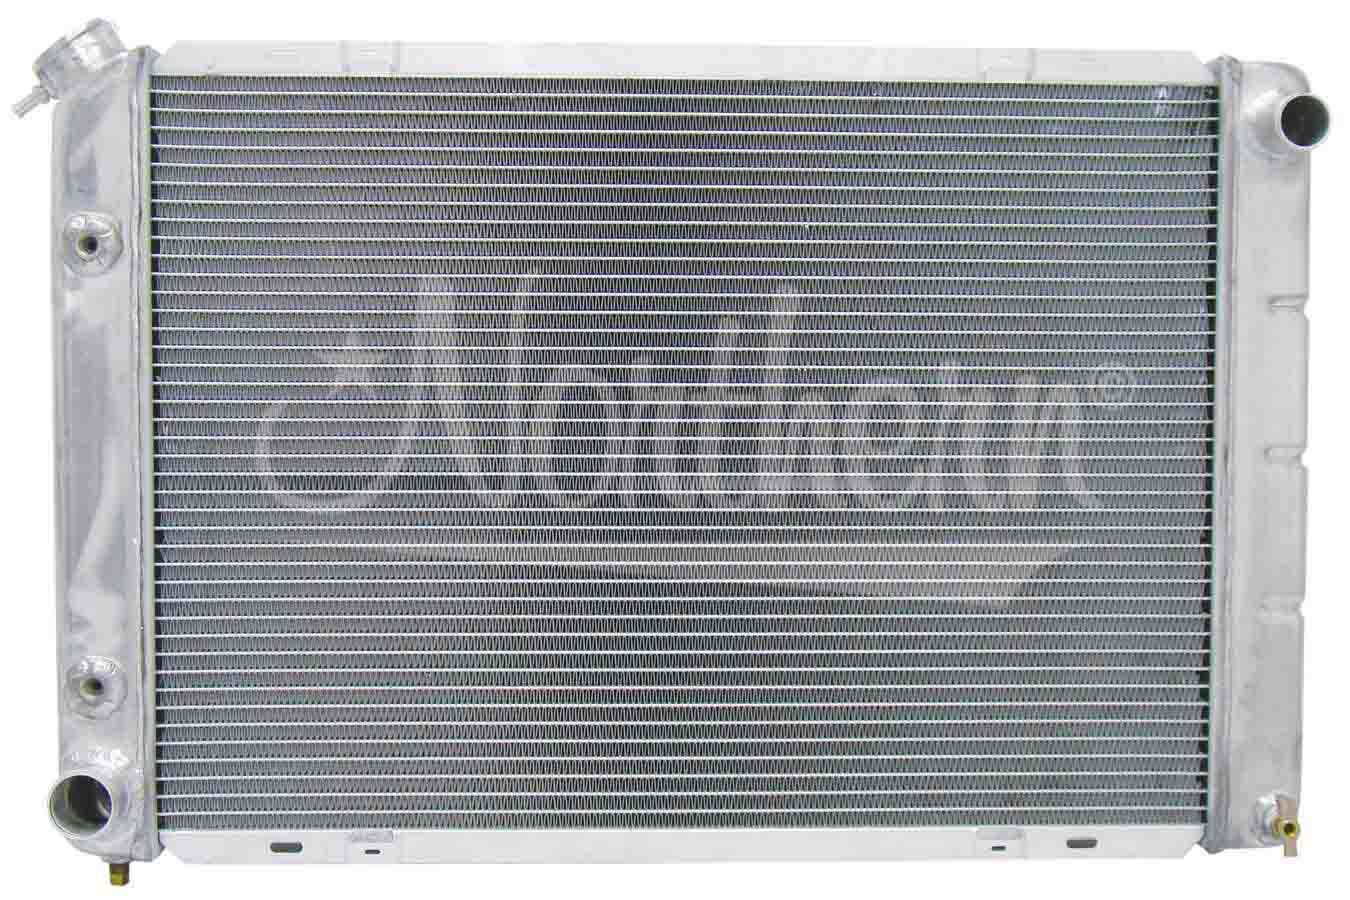 Northern Radiator 205029 Radiator, 29 in W x 18-7/8 in H x 3-1/8 in D, Passenger Side Inlet, Driver Side Outlet, Aluminum, Natural, Automatic, Ford Mustang 1980-93, Each